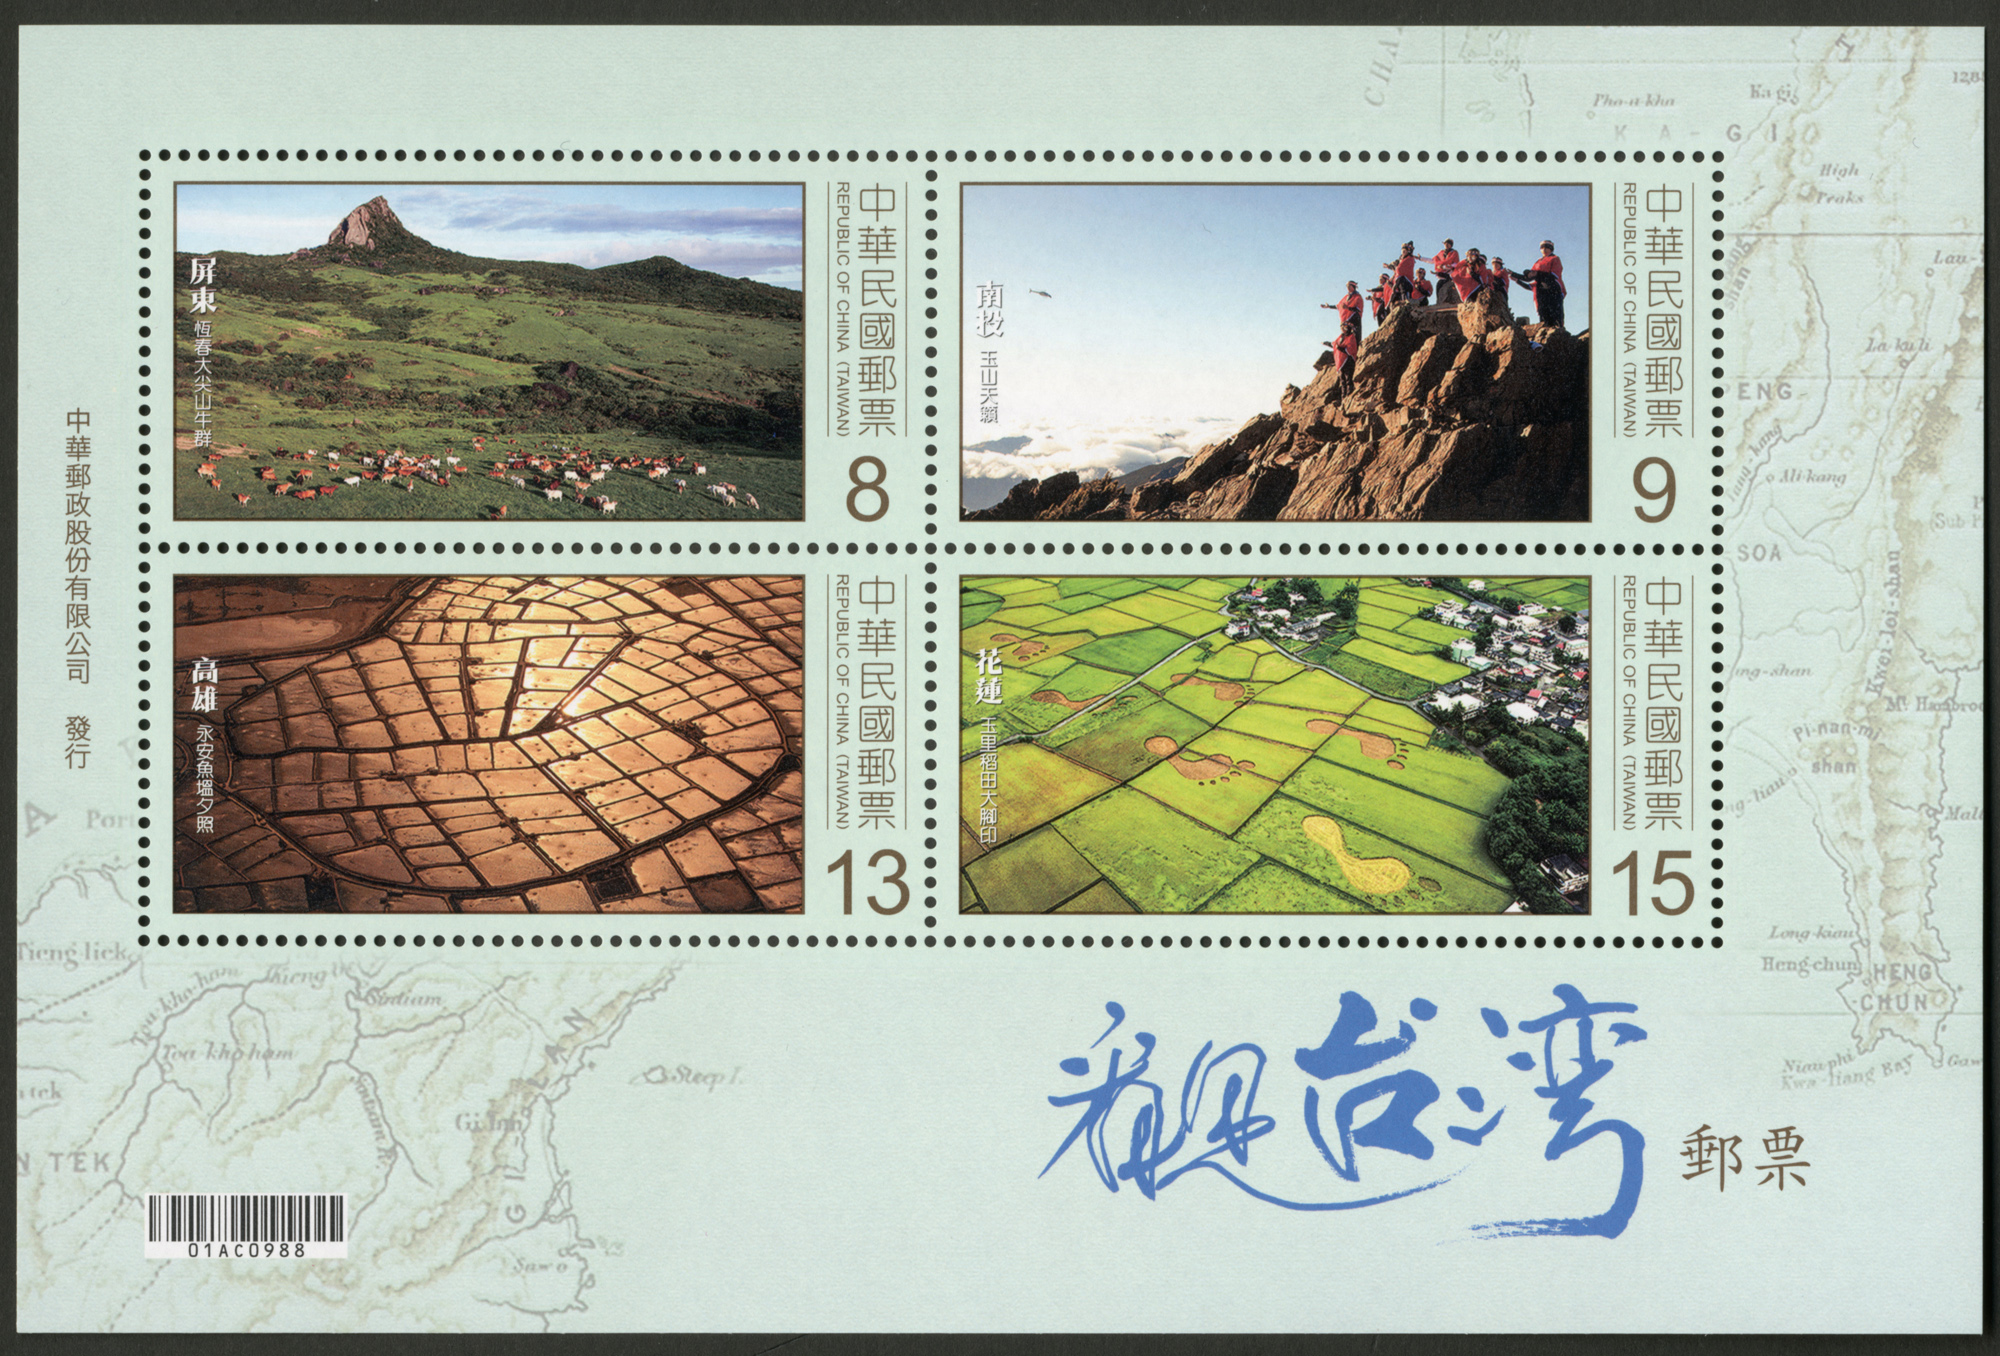 Taiwan from the Air Souvenir Sheet